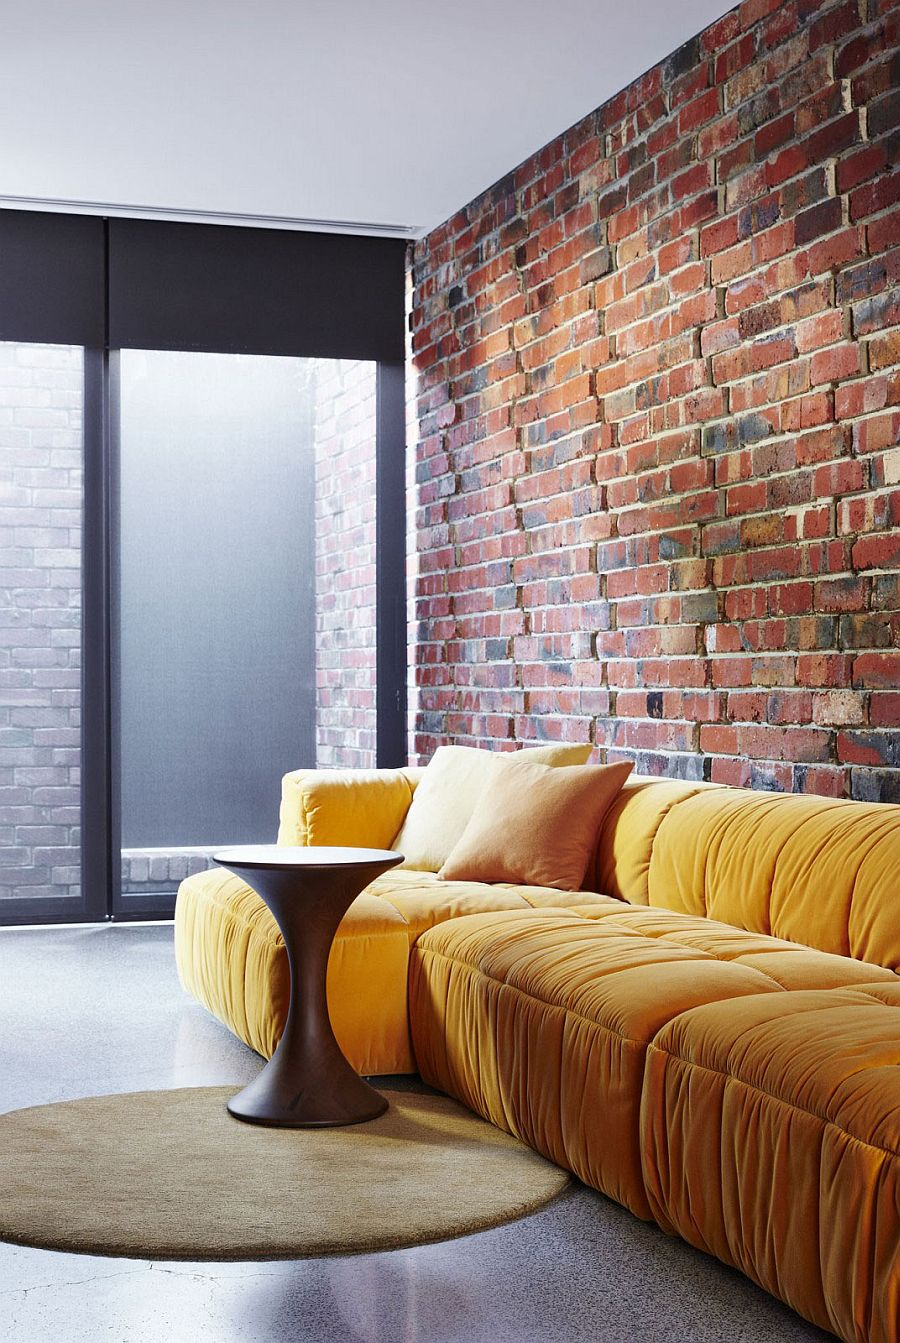 Plush couch in bright yellow adds color to the creative sitting area in brick, glass and steel